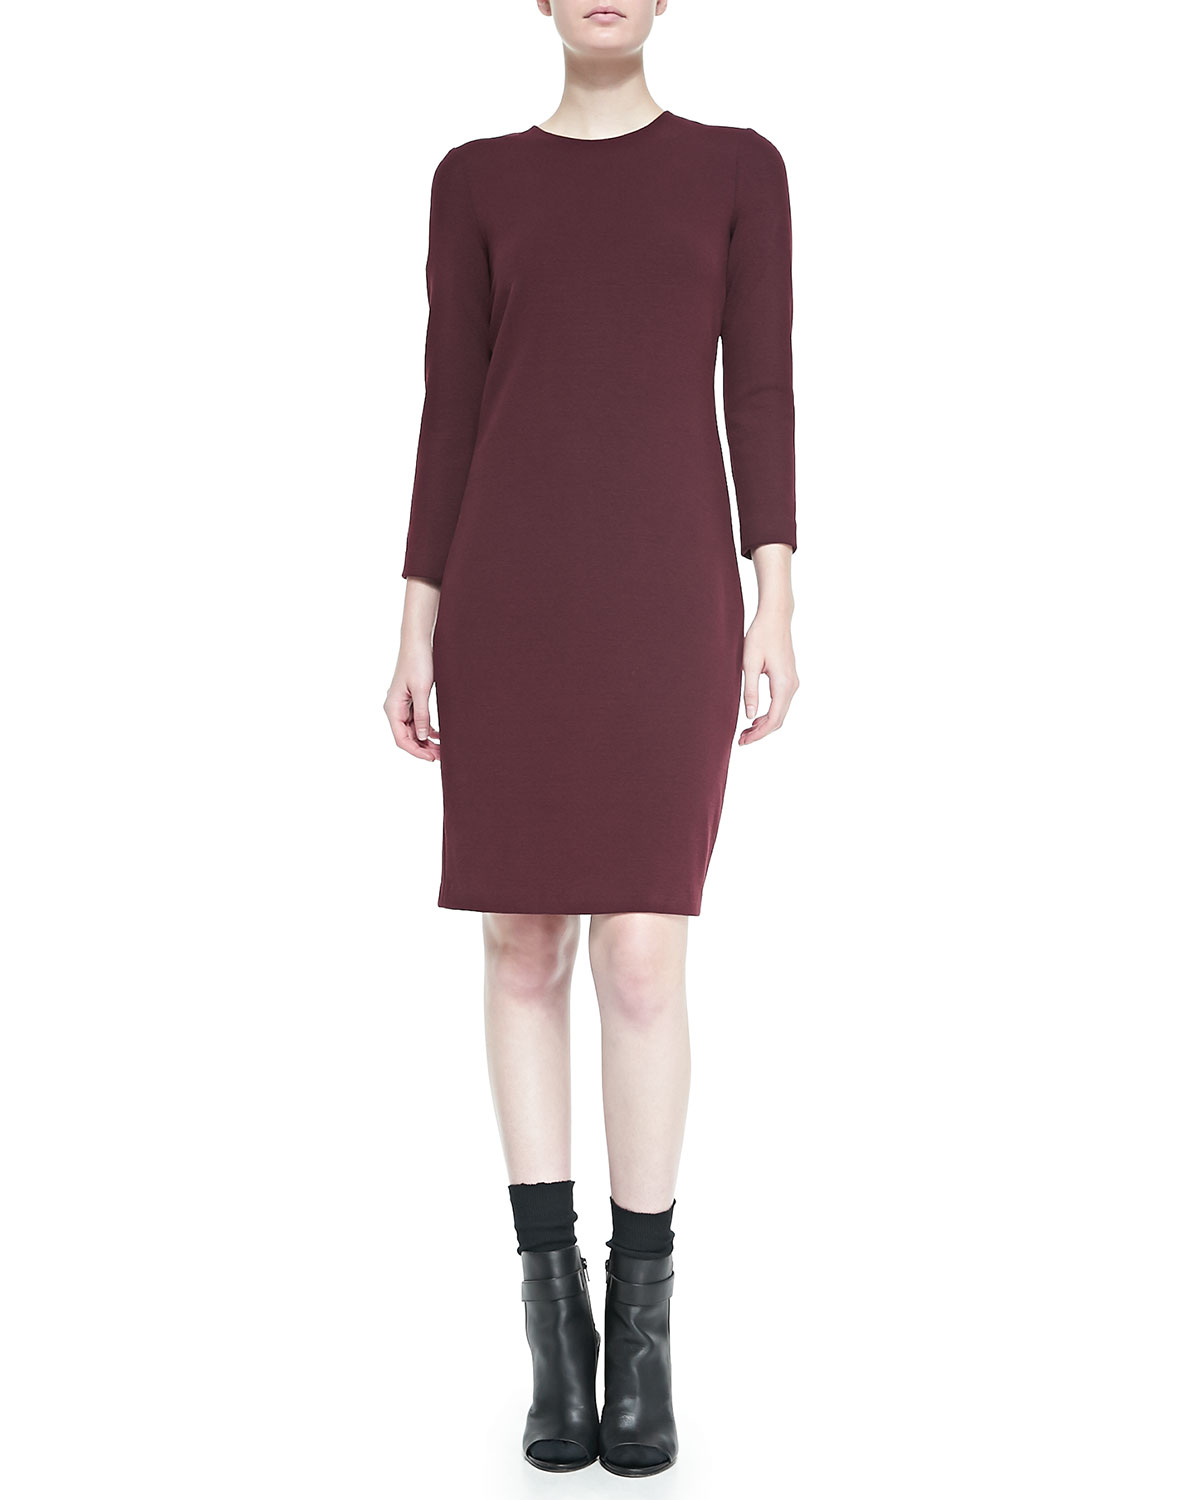 Sheath Dress With 34 Sleeves   www.galleryhip.com - The Hippest Pics